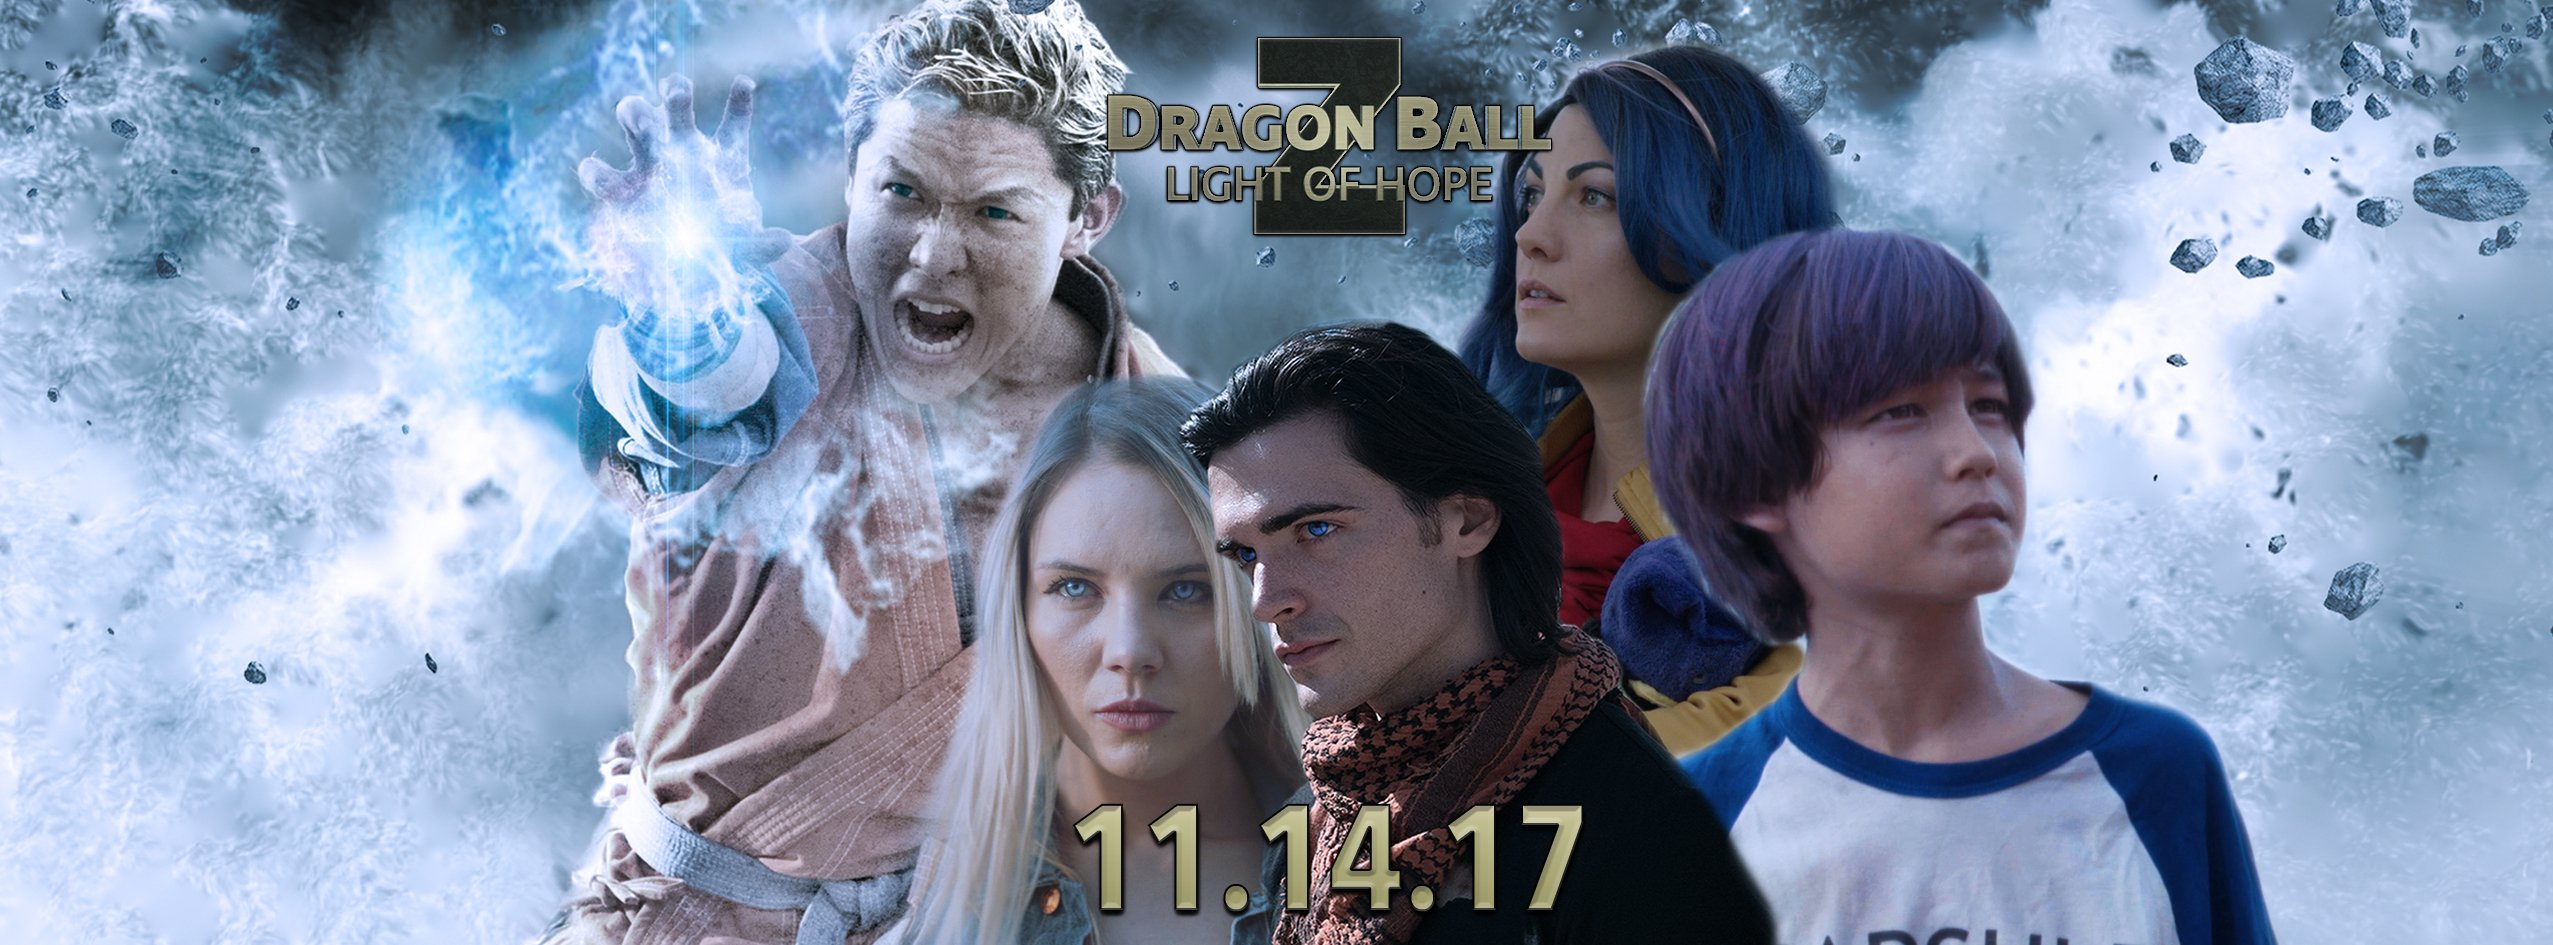 Dragon Ball Z: Light of Hope